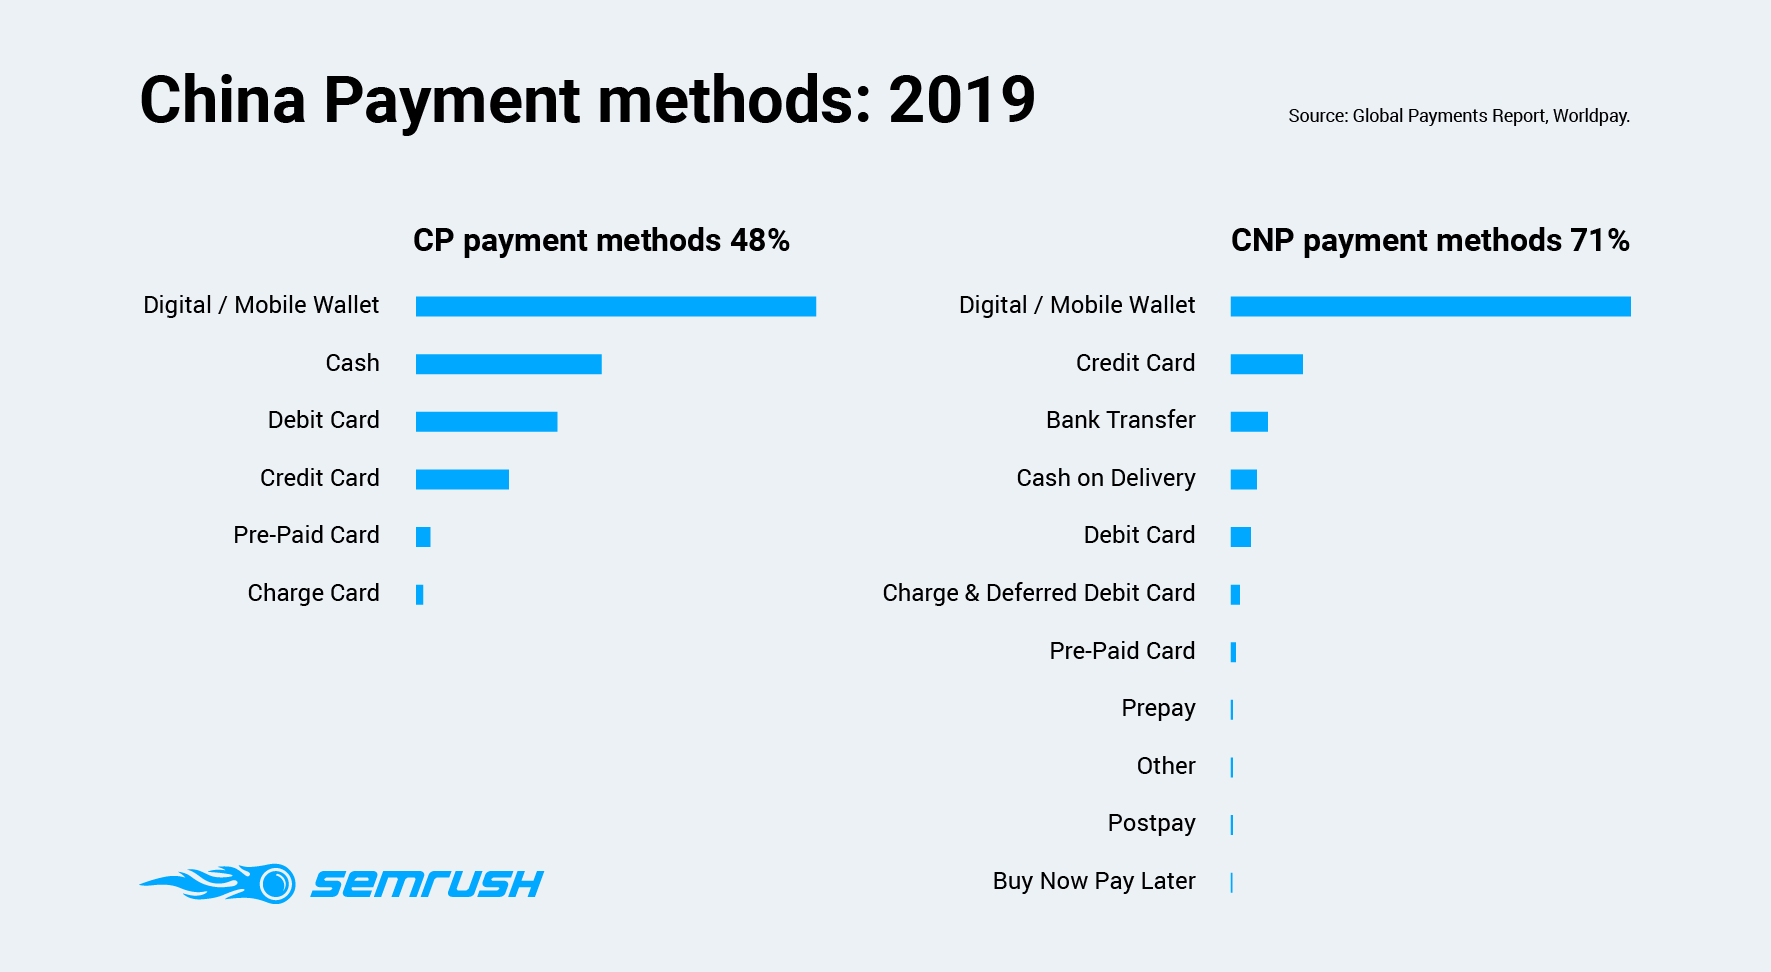 China Payment methods